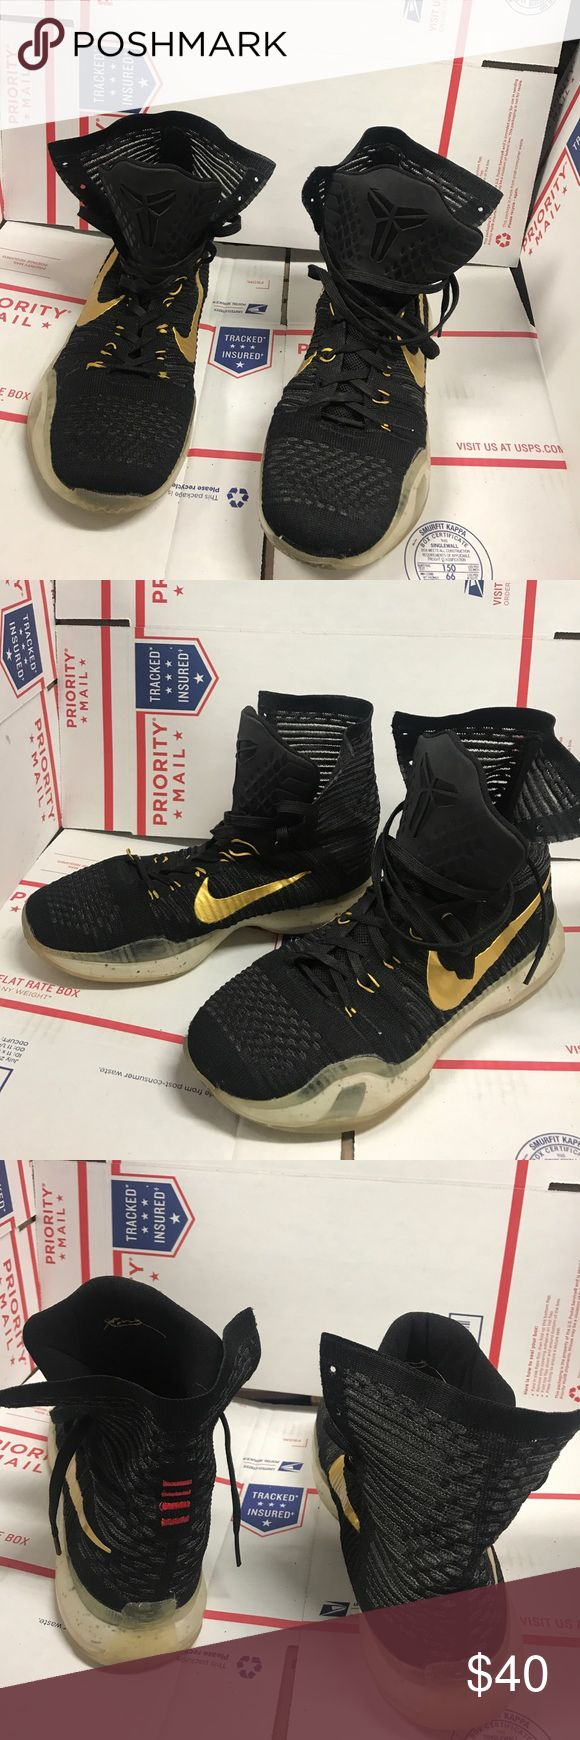 "Hardly worn Rare Kobe x elite  hi top size 8 Worn twice , grooves on soles are all there , no rips or tears ,  excellent condition "" last active roster Kobe shoes "" Nike Shoes Sneakers"